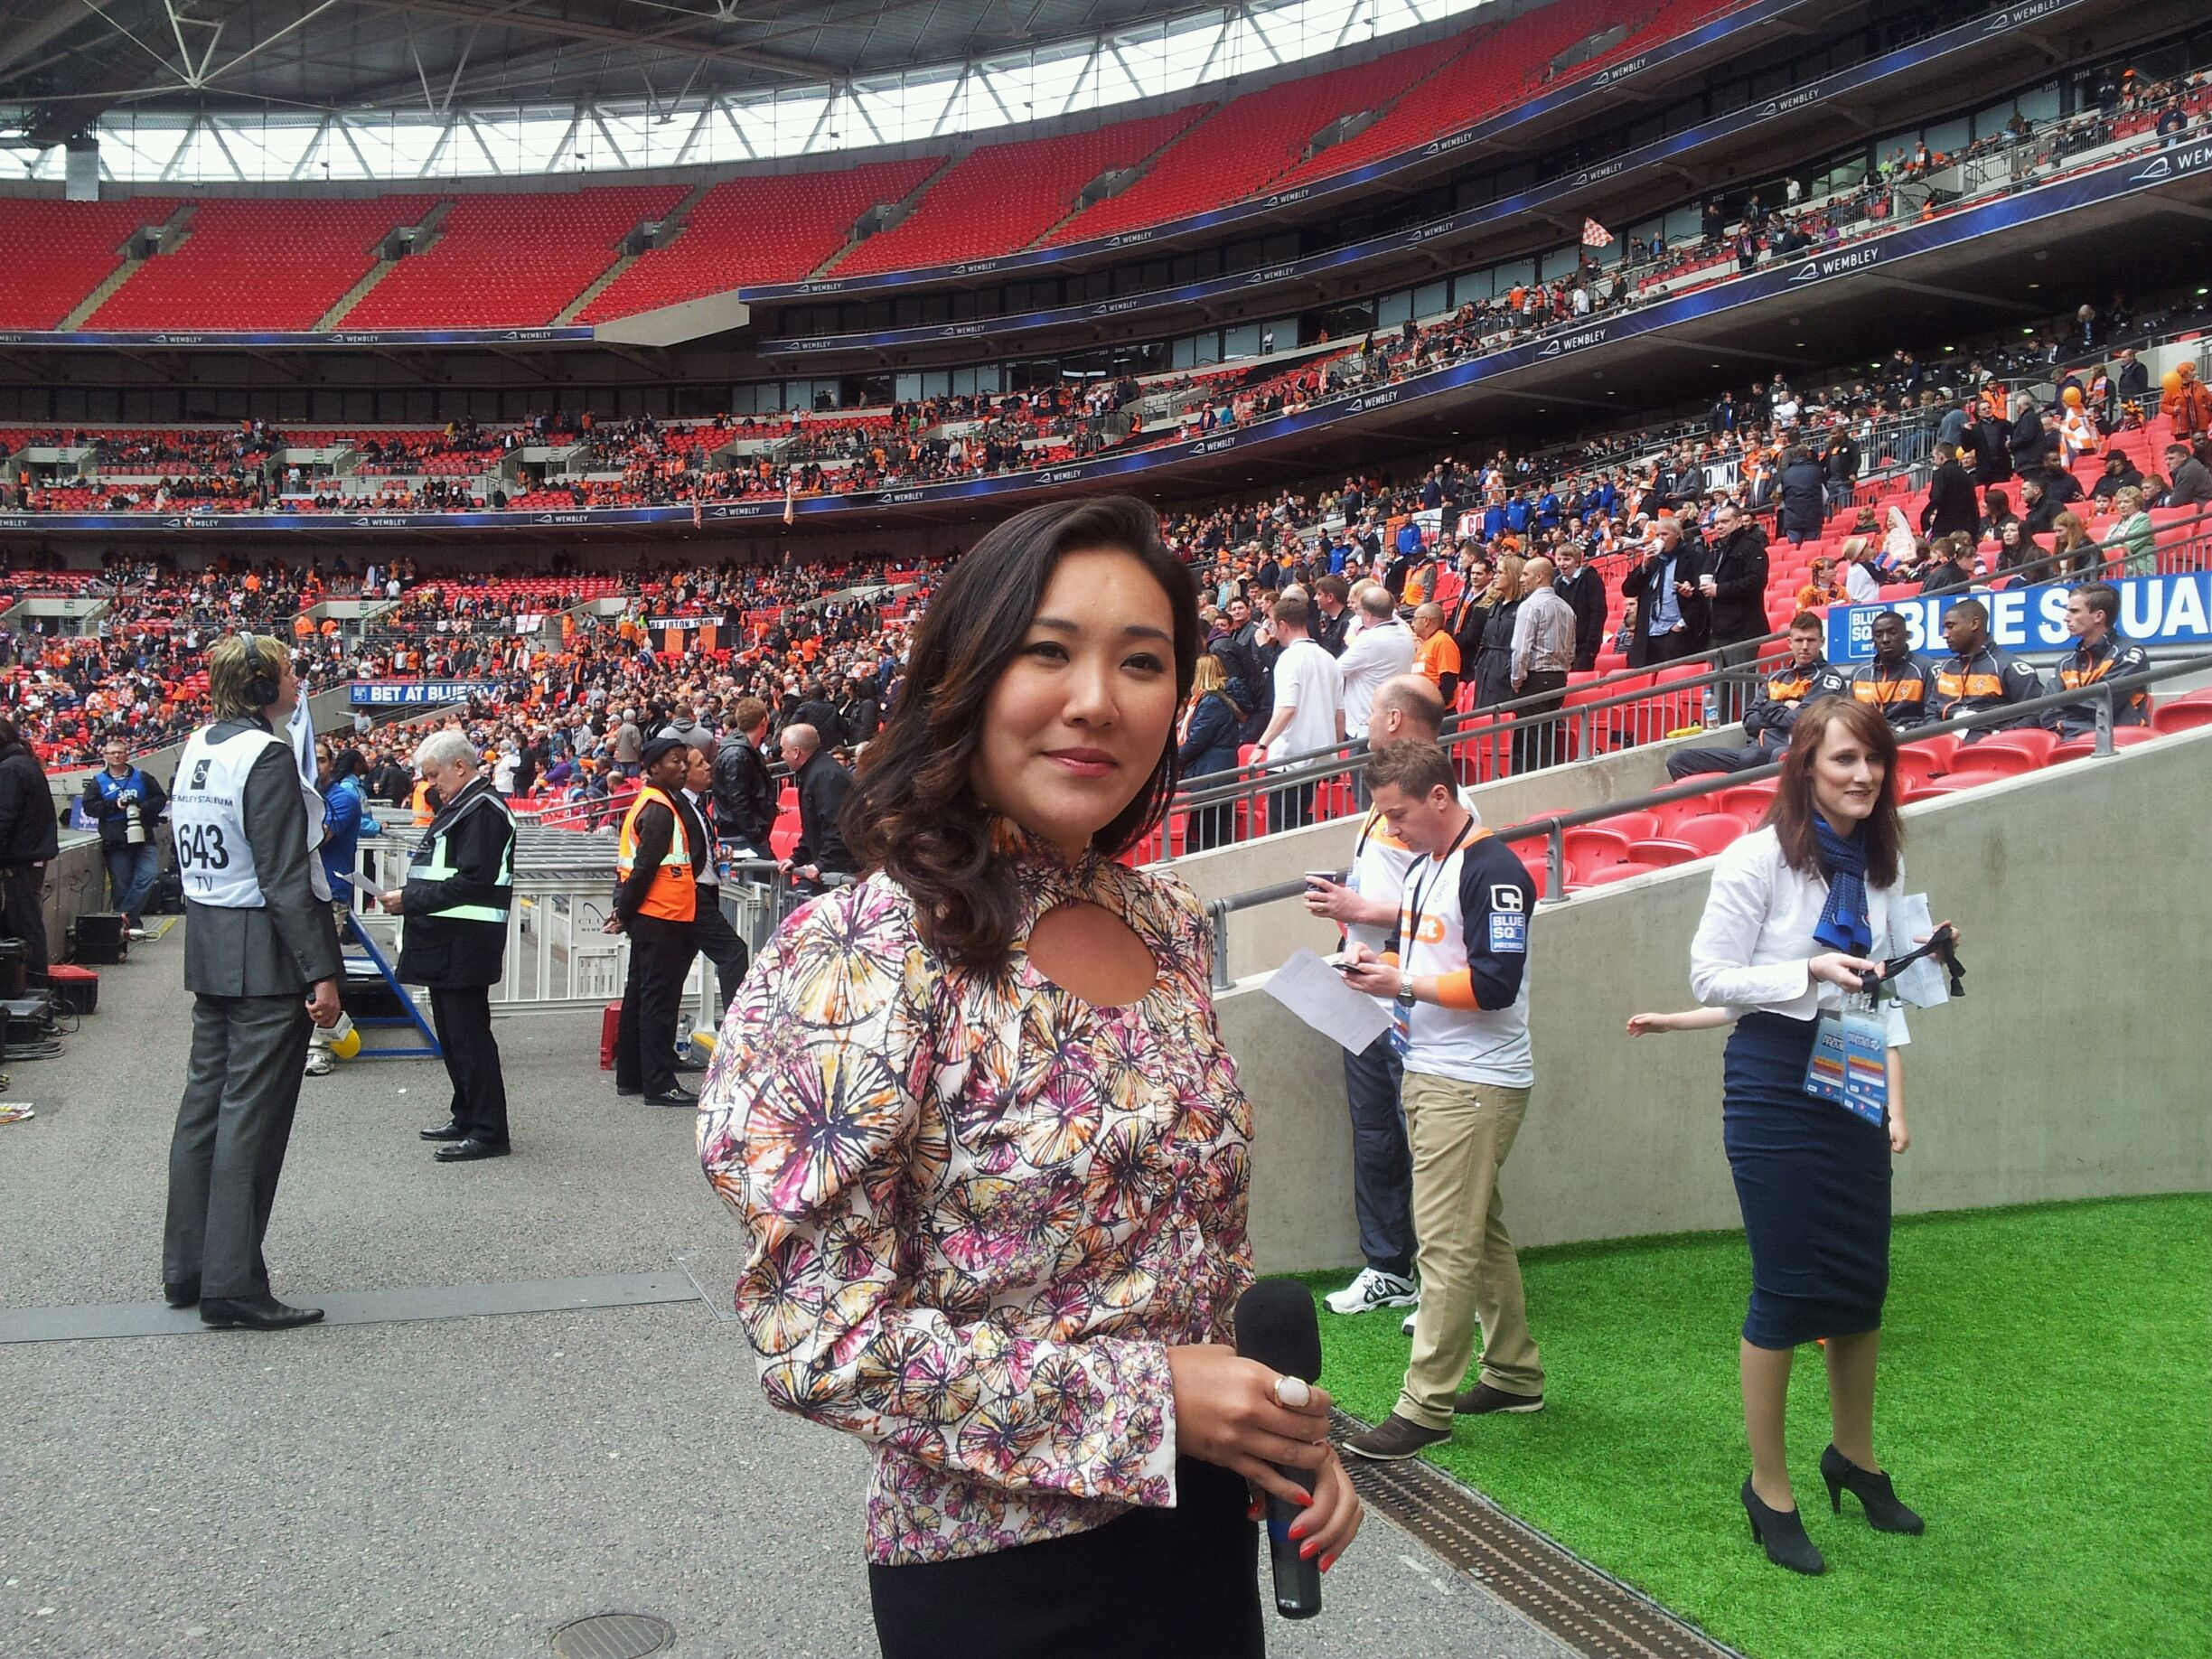 Rose Jang Wembley about to sing